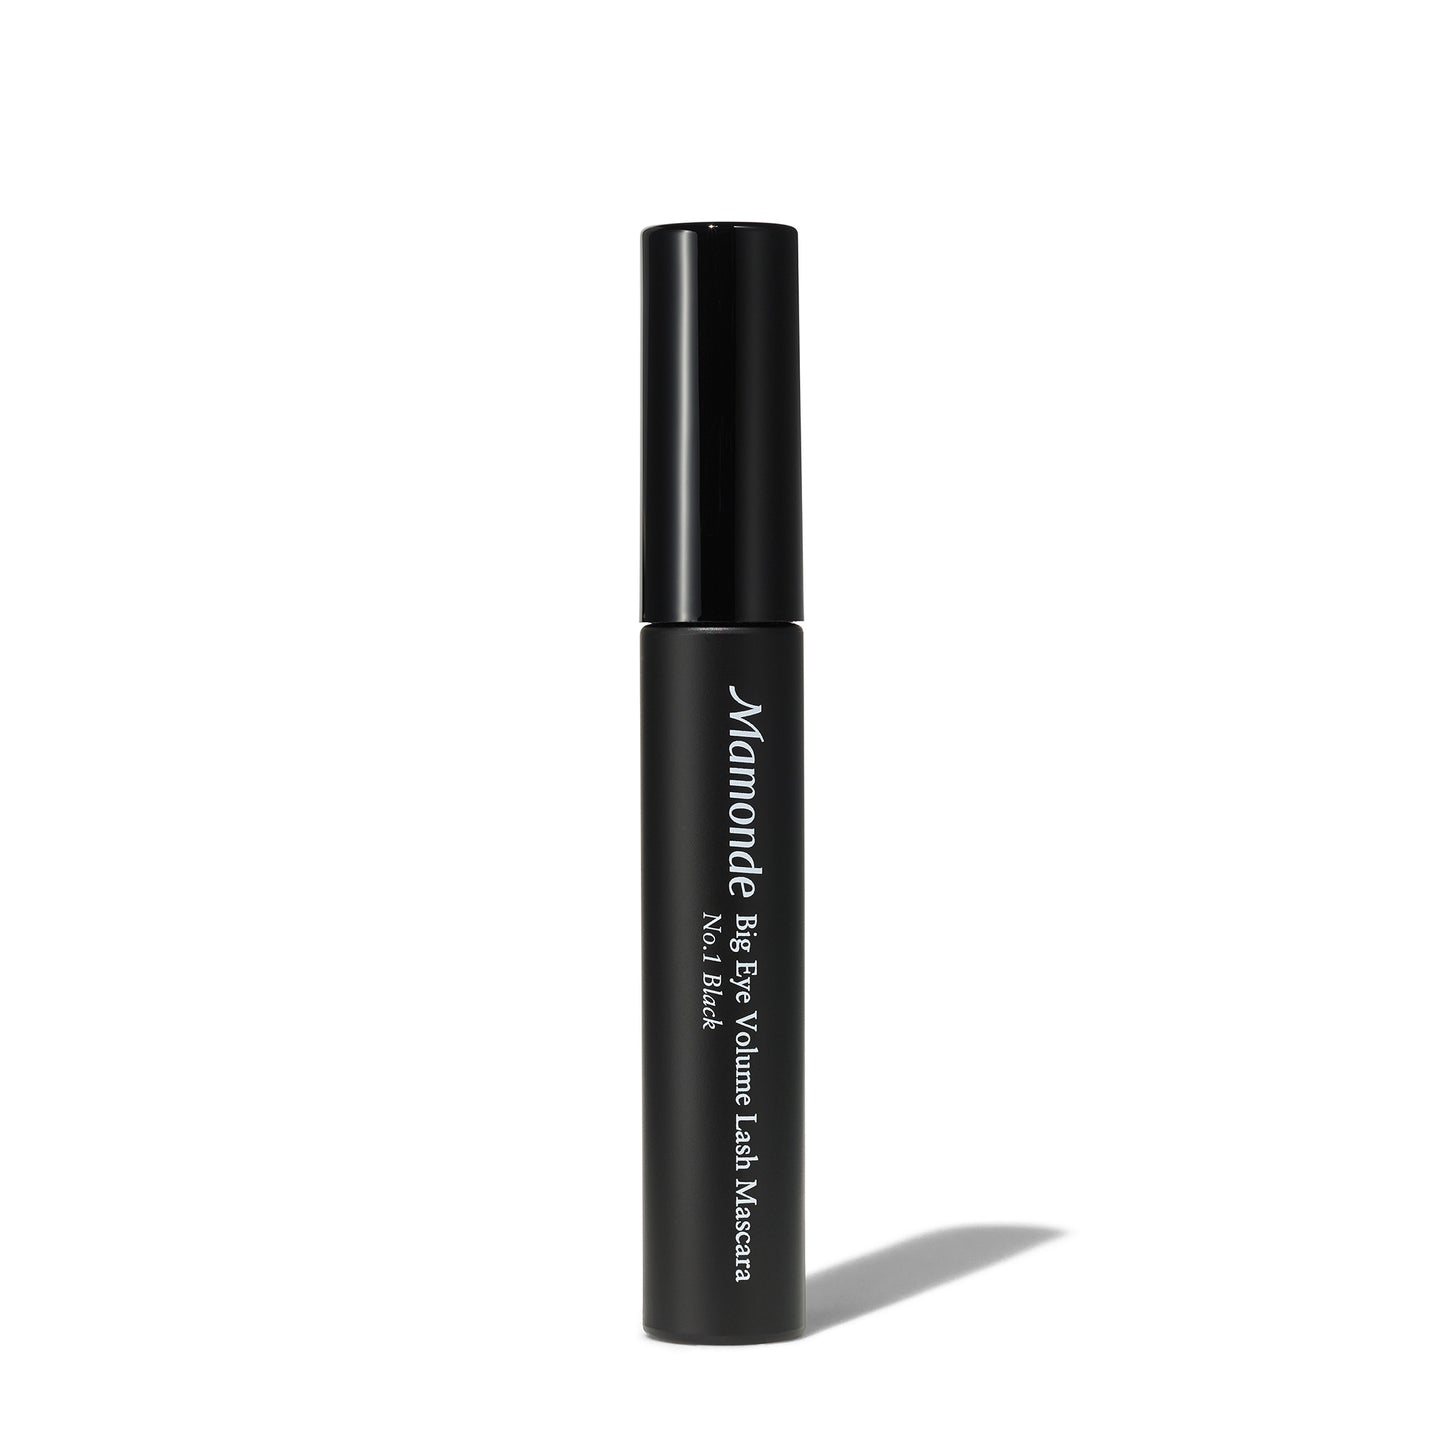 Big Eye Volume Lash Mascara - Black